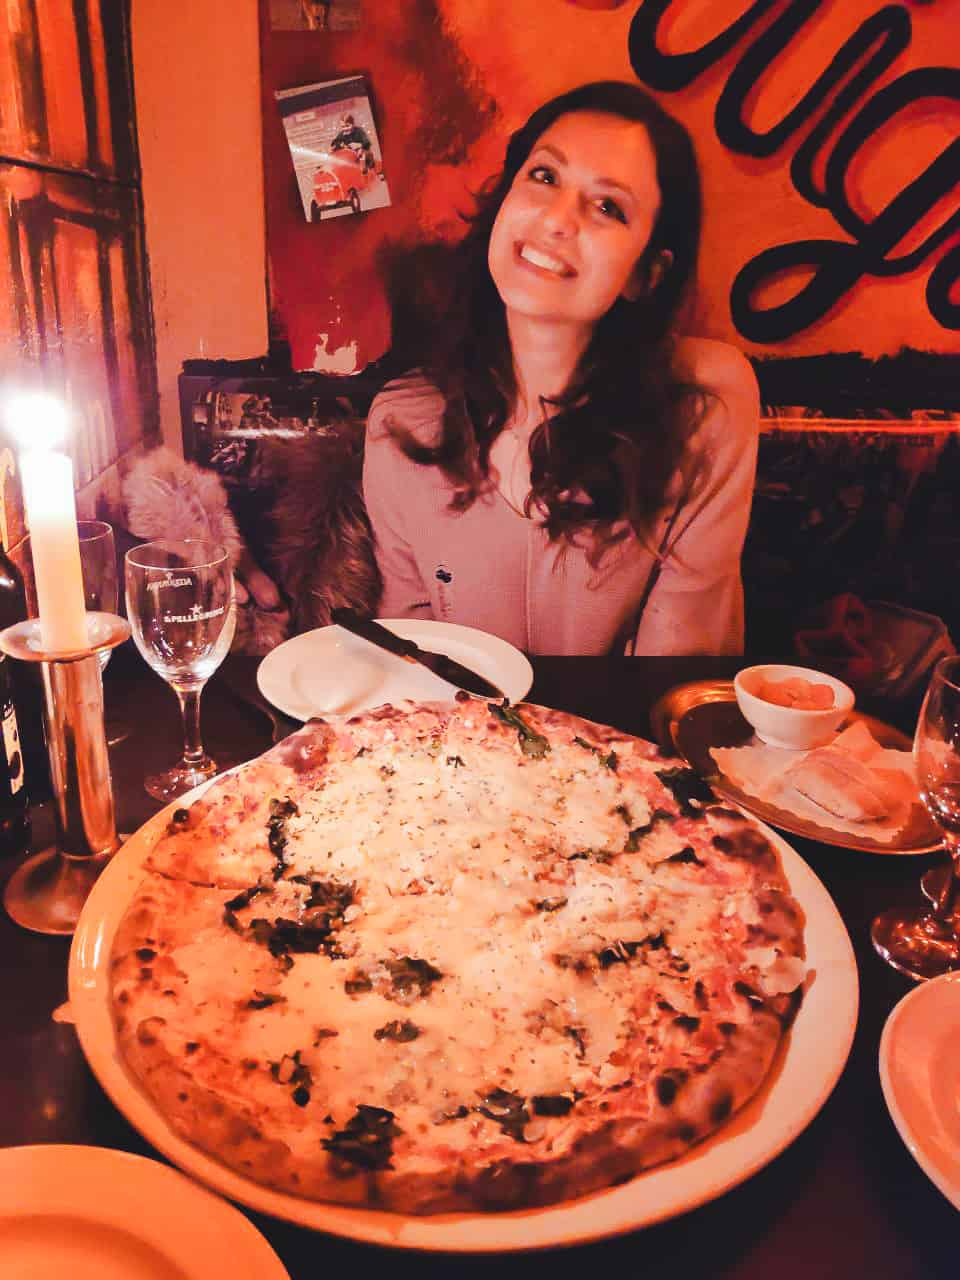 Luigi's pizza restaurant in Hamburg, Germany is known for its giant pizzas!